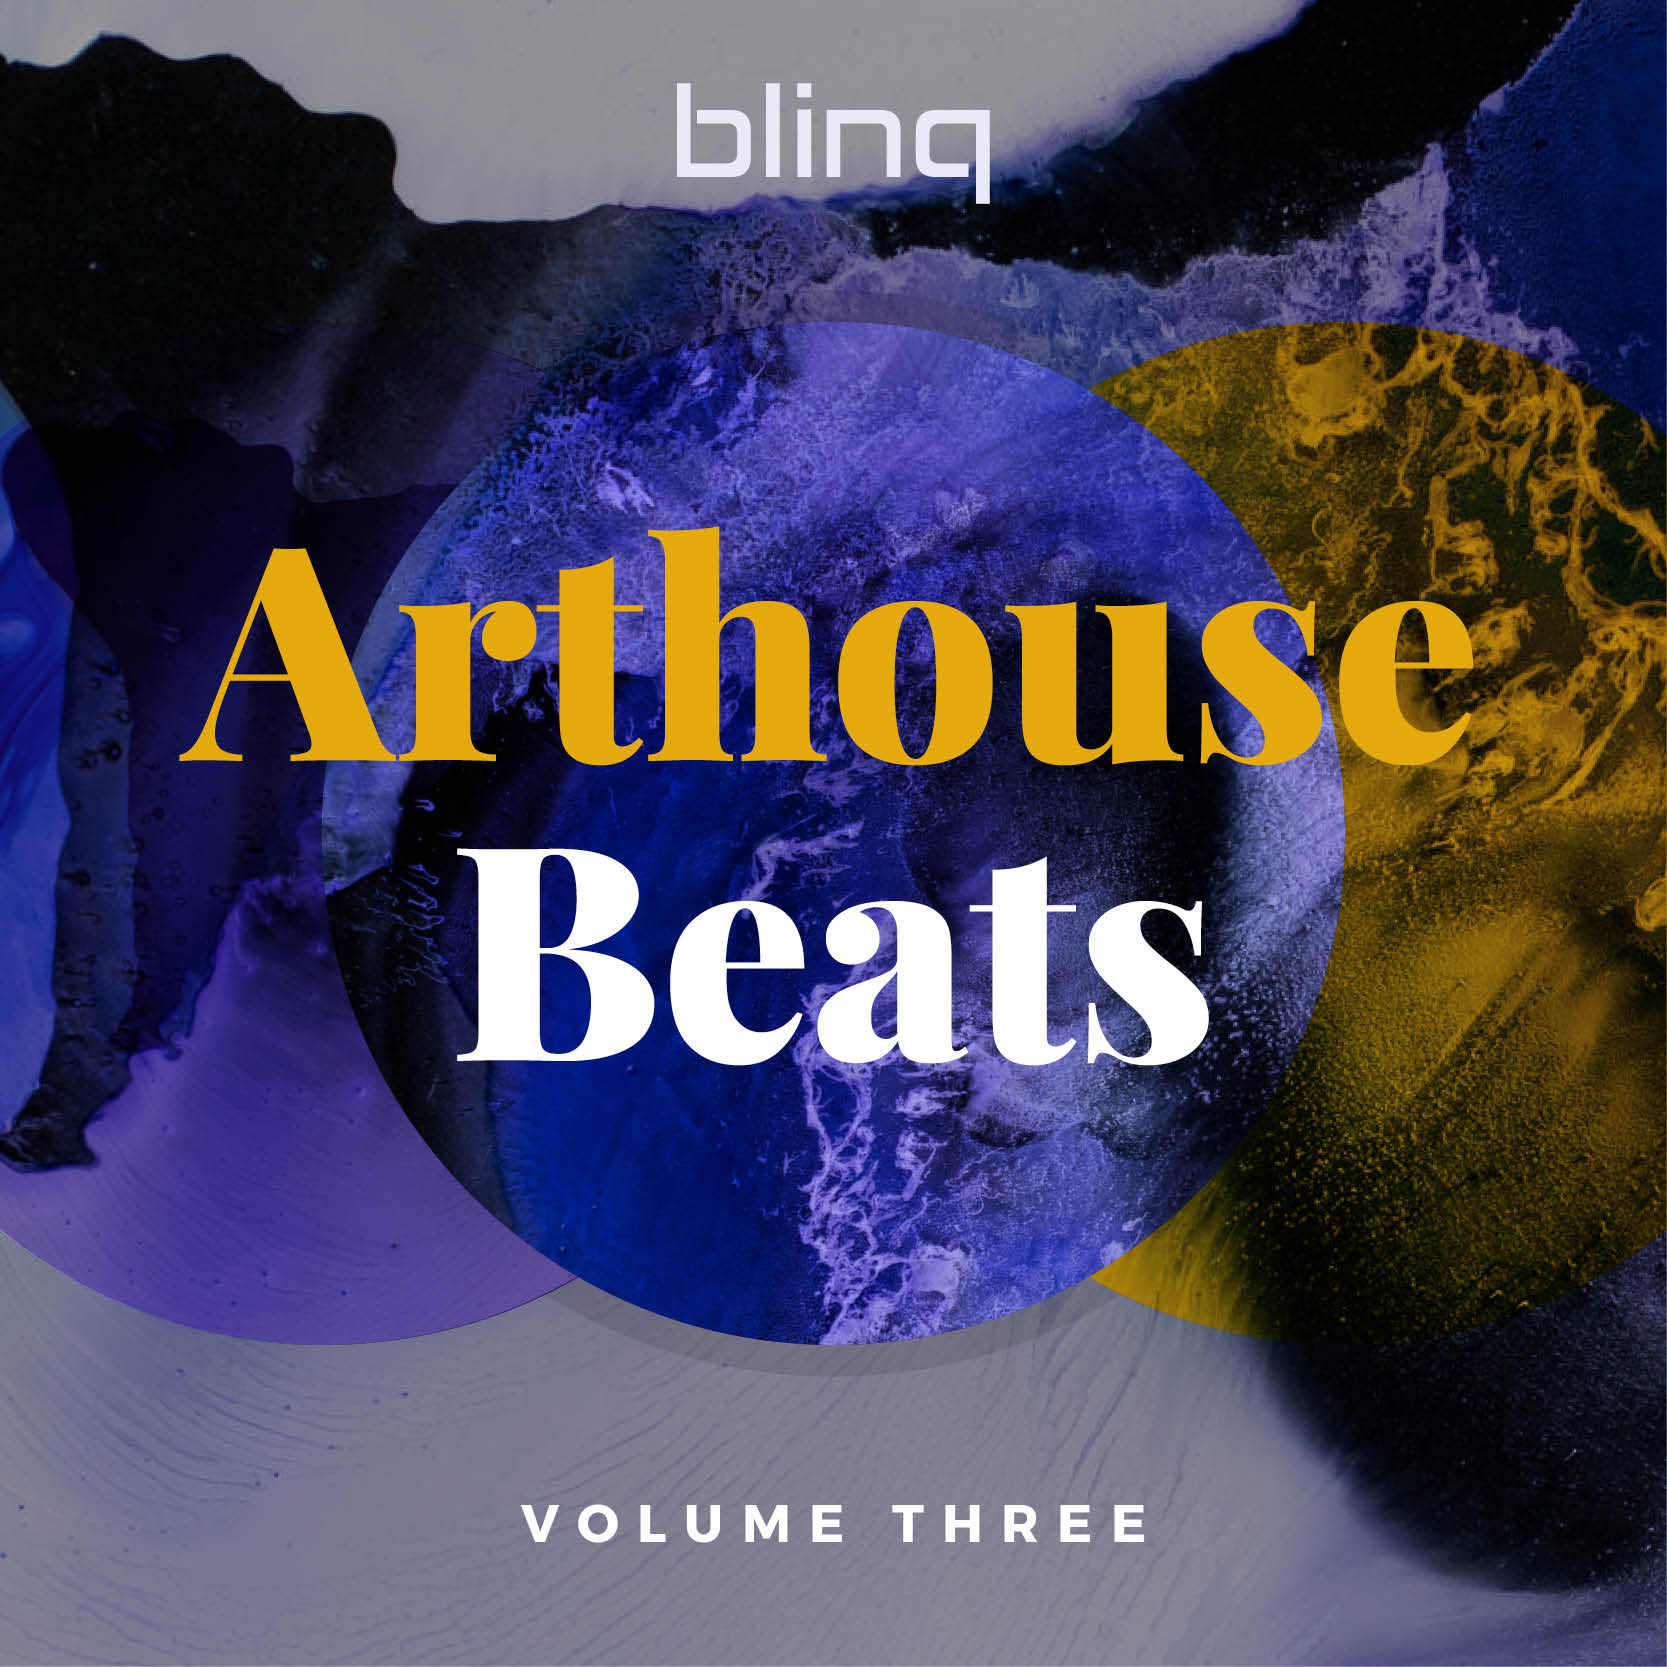 Arthouse Beats vol.3